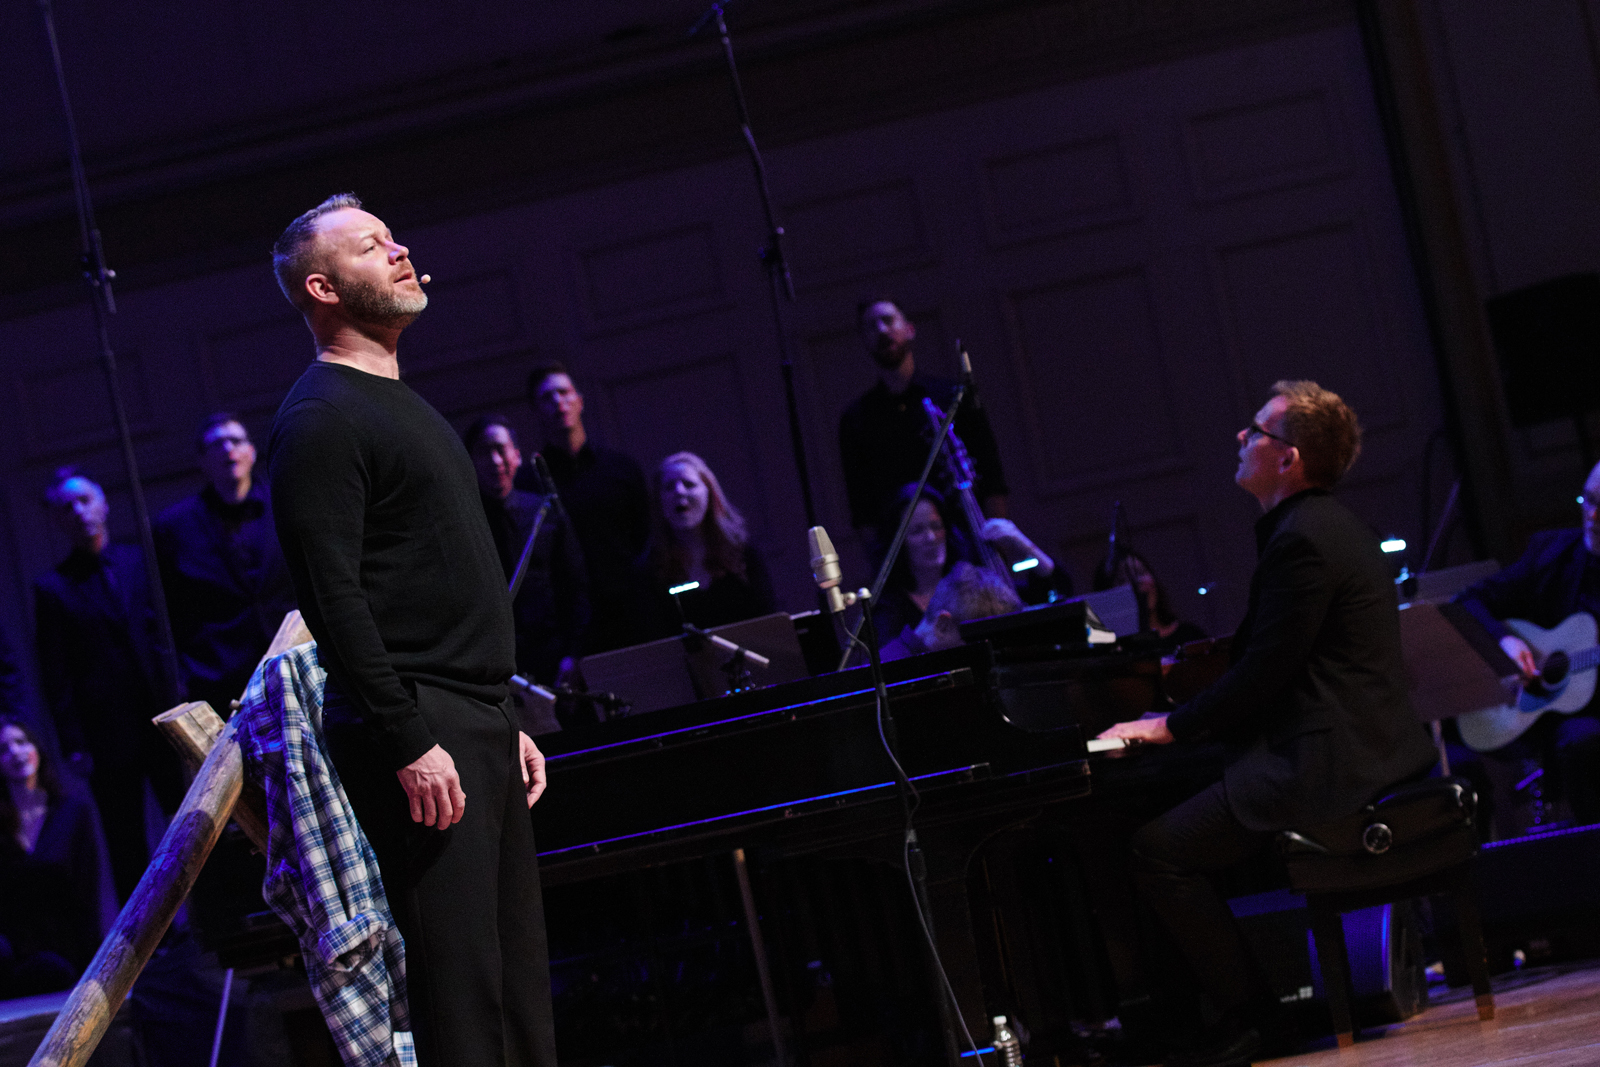 Composer Craig Hella Johnson plays piano as Matt Alber sings at Boston's Symphony Hall. (Courtesy David Green/Berklee College)